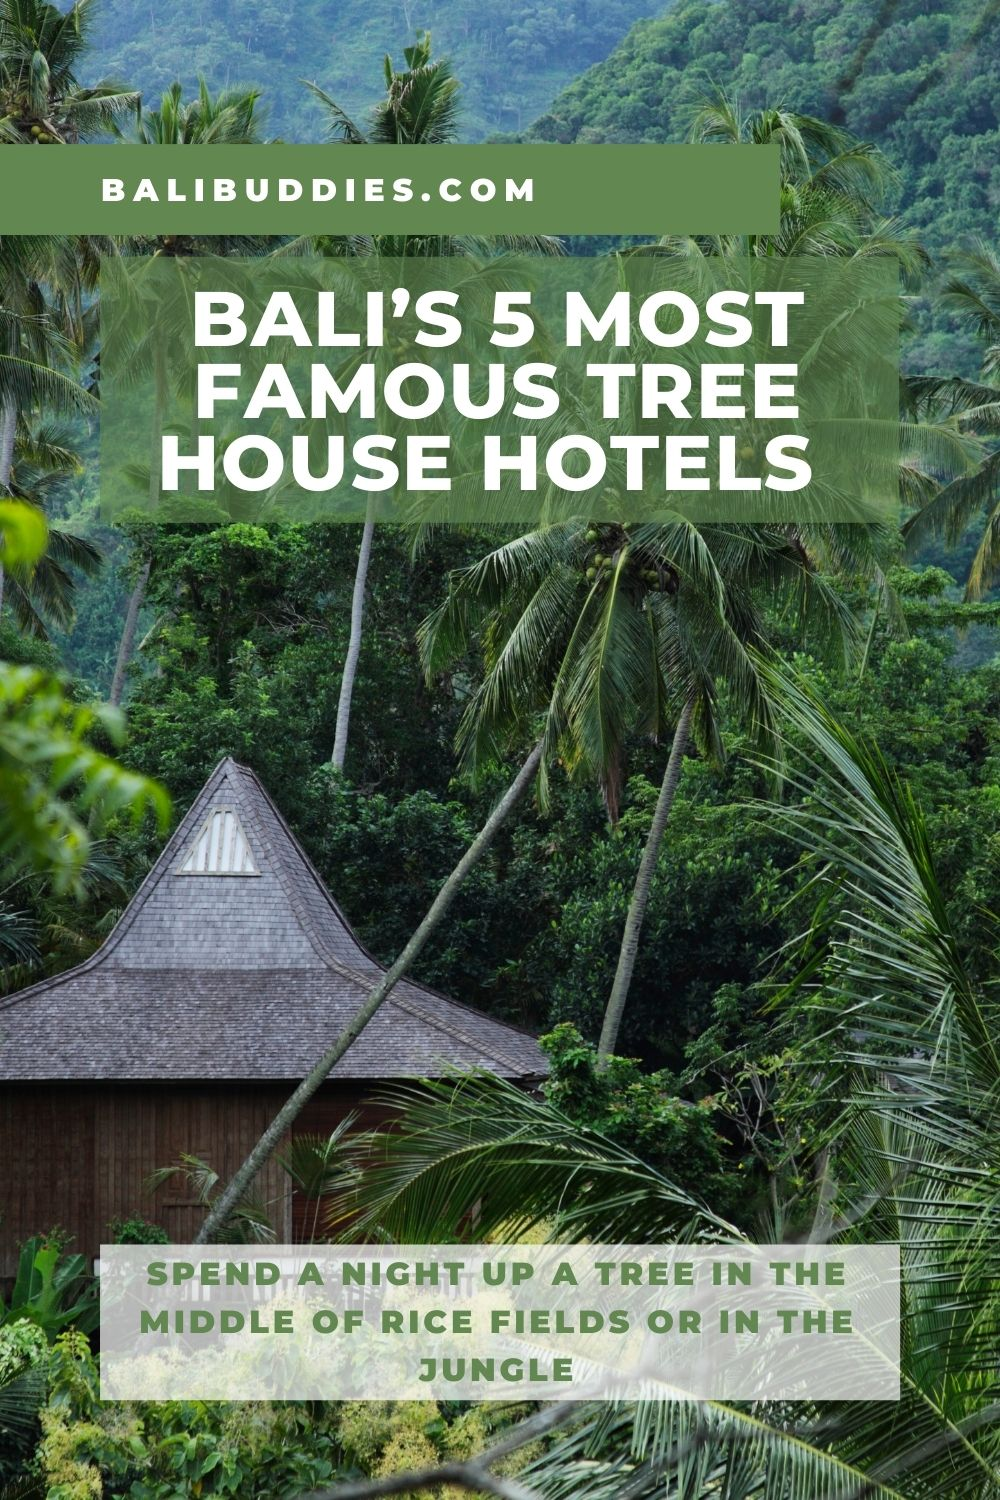 Top Tree House Hotels in Bali